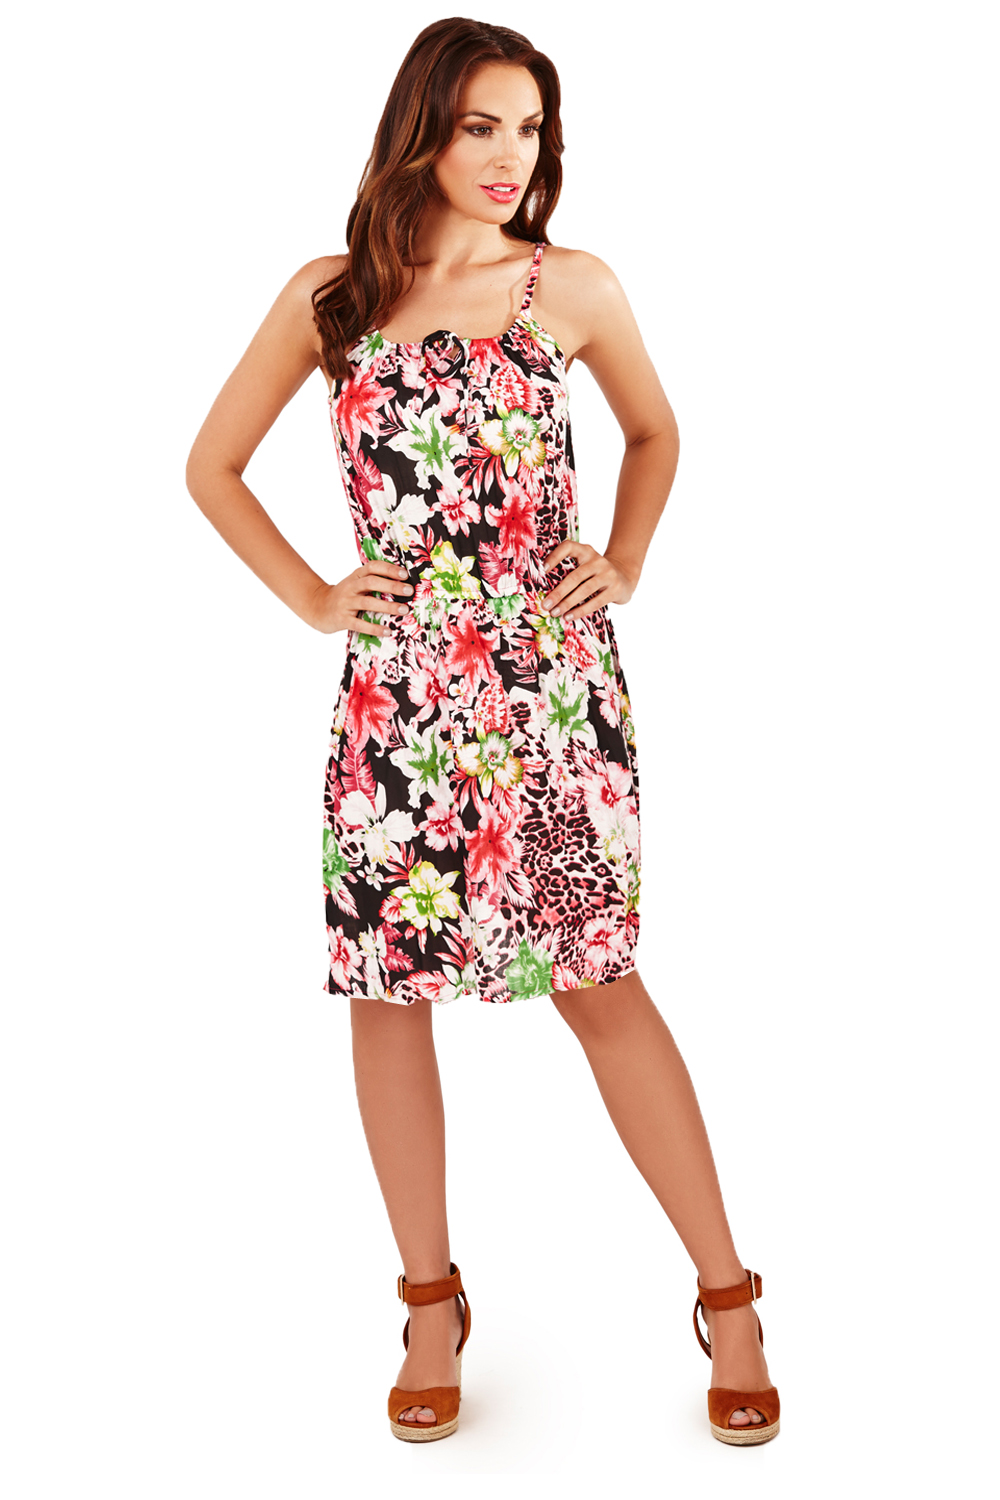 pistachio womens floral amp animal print dress short strappy